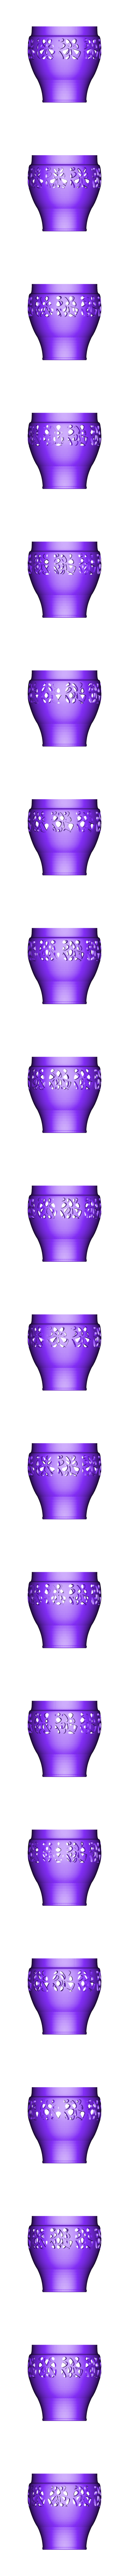 vase bleu.stl Download free STL file Vase • Object to 3D print, jttassin